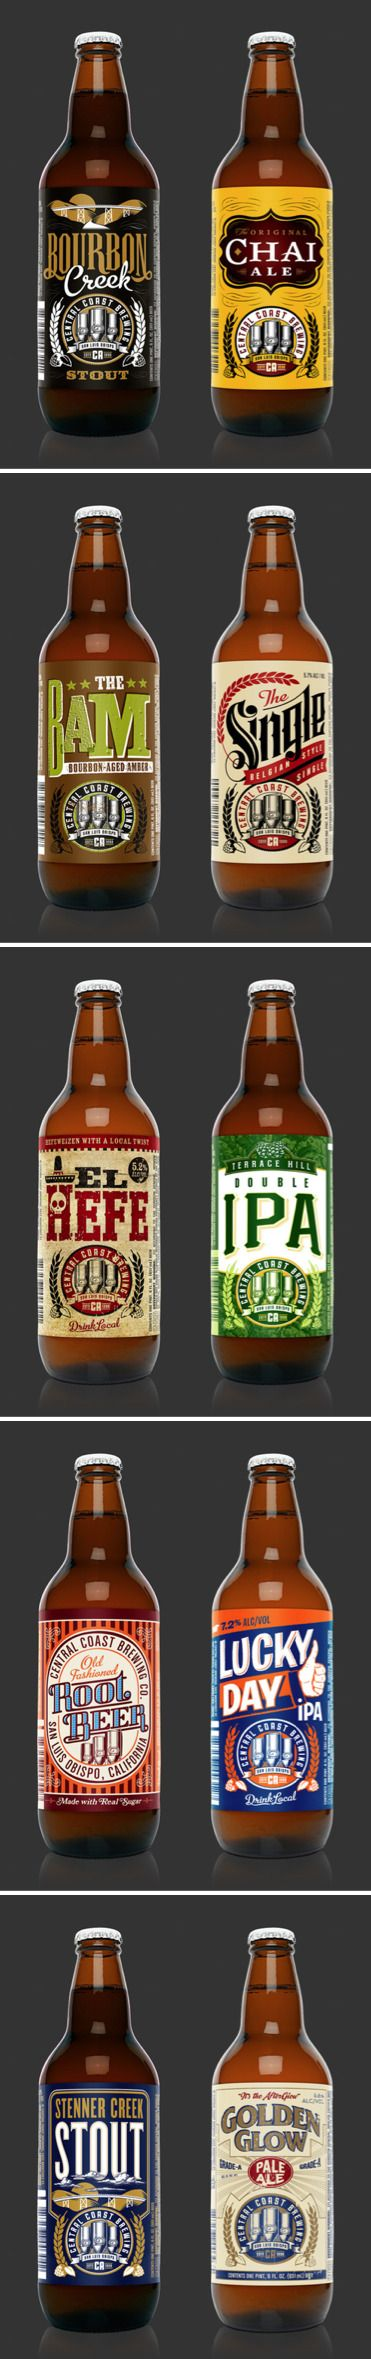 Stellar Beer Label Designs by Scott Greci #beer #foster #australia  Beer Club OZ presents – the Beer Cellar – ultimate source for imported beer in Australia  http://www.kangabulletin.com/online-shopping-in-australia/beer-club-oz-presents-the-beer-cellar-ultimate-source-for-imported-beer-in-australia/